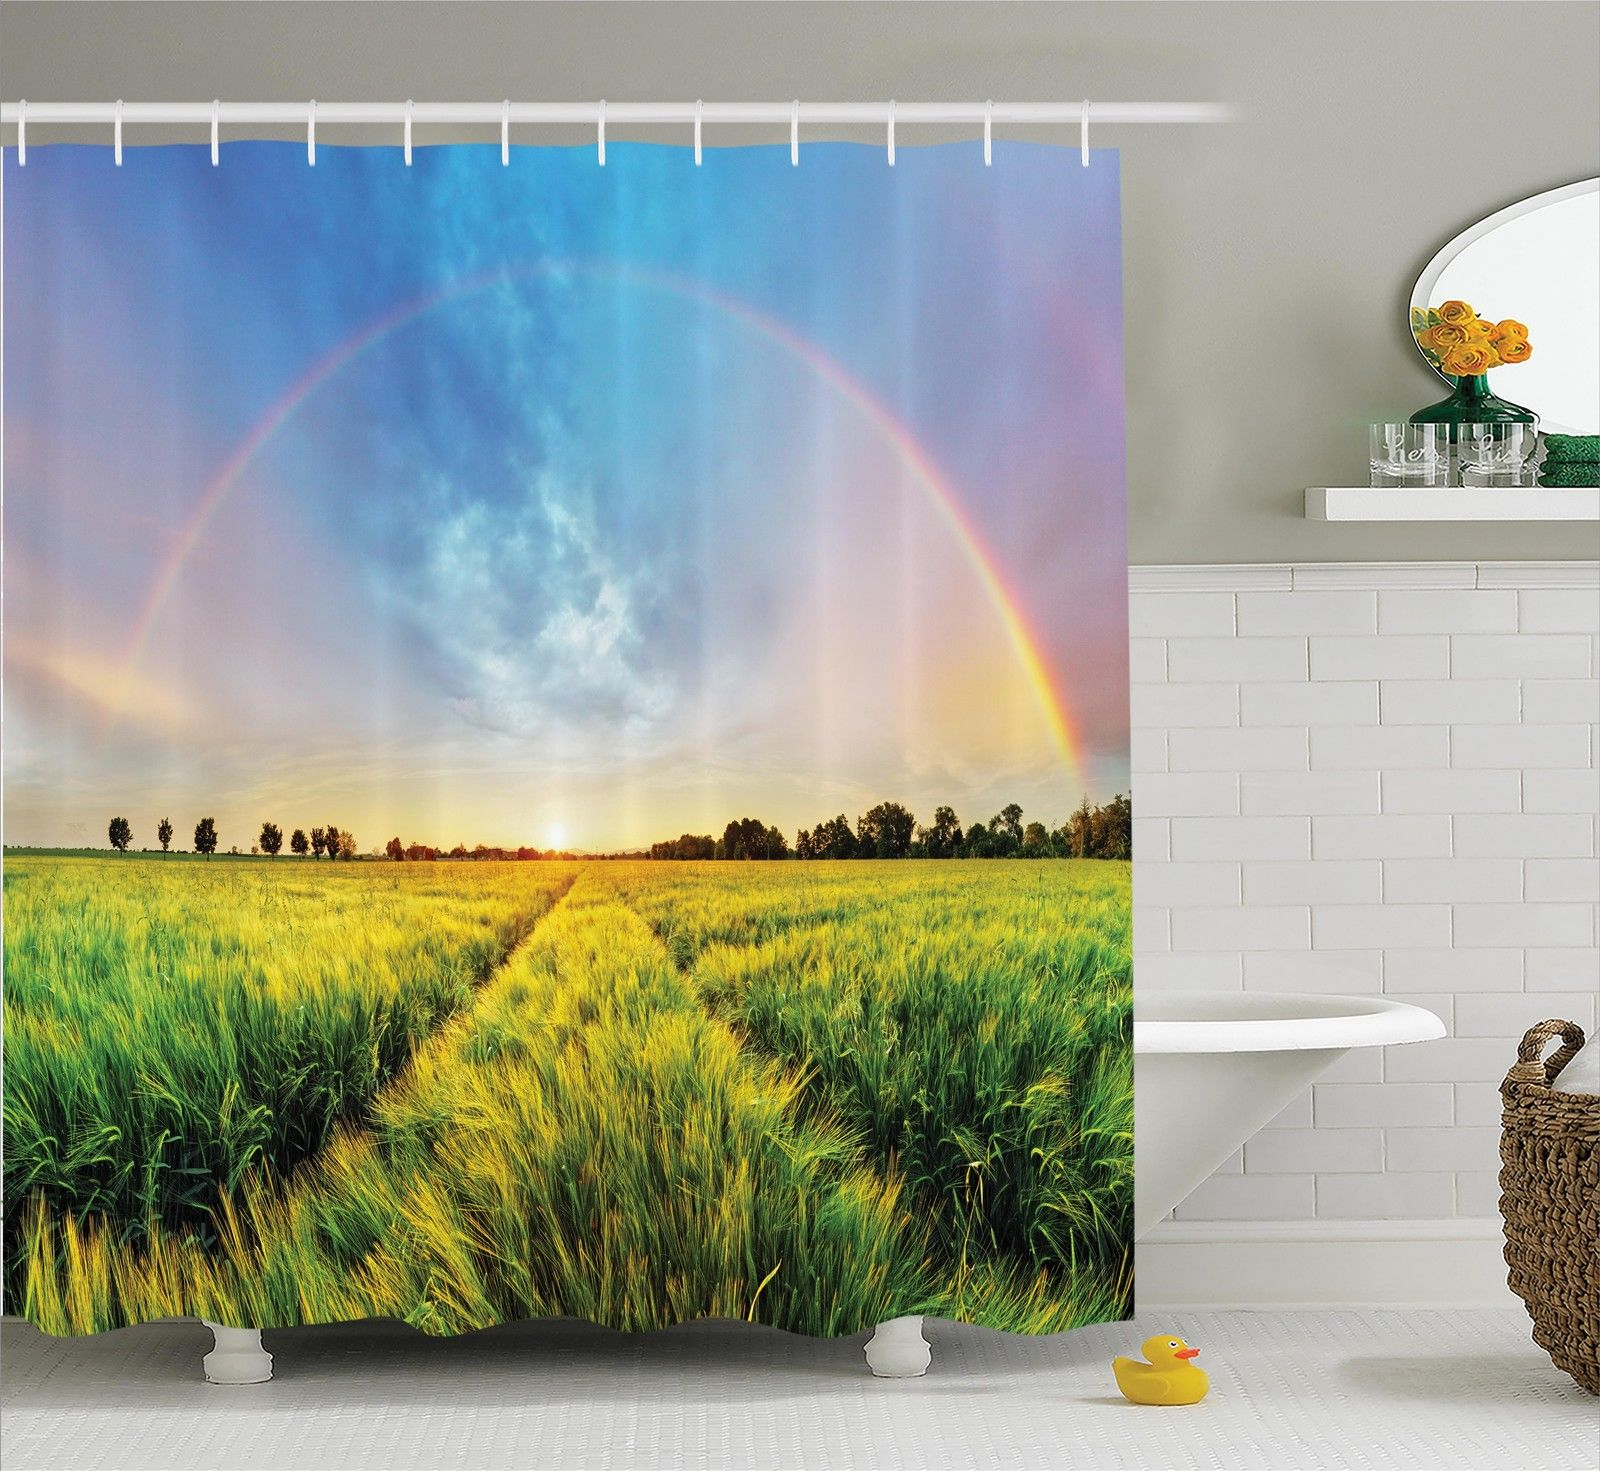 Farm House Decor Shower Curtain Set, Rainbow In Sky Over Wheat Field At Sunset Natural Paradise Rural Life Illustration, Bathroom Accessories, 69W X 70L Inches, By Ambesonne